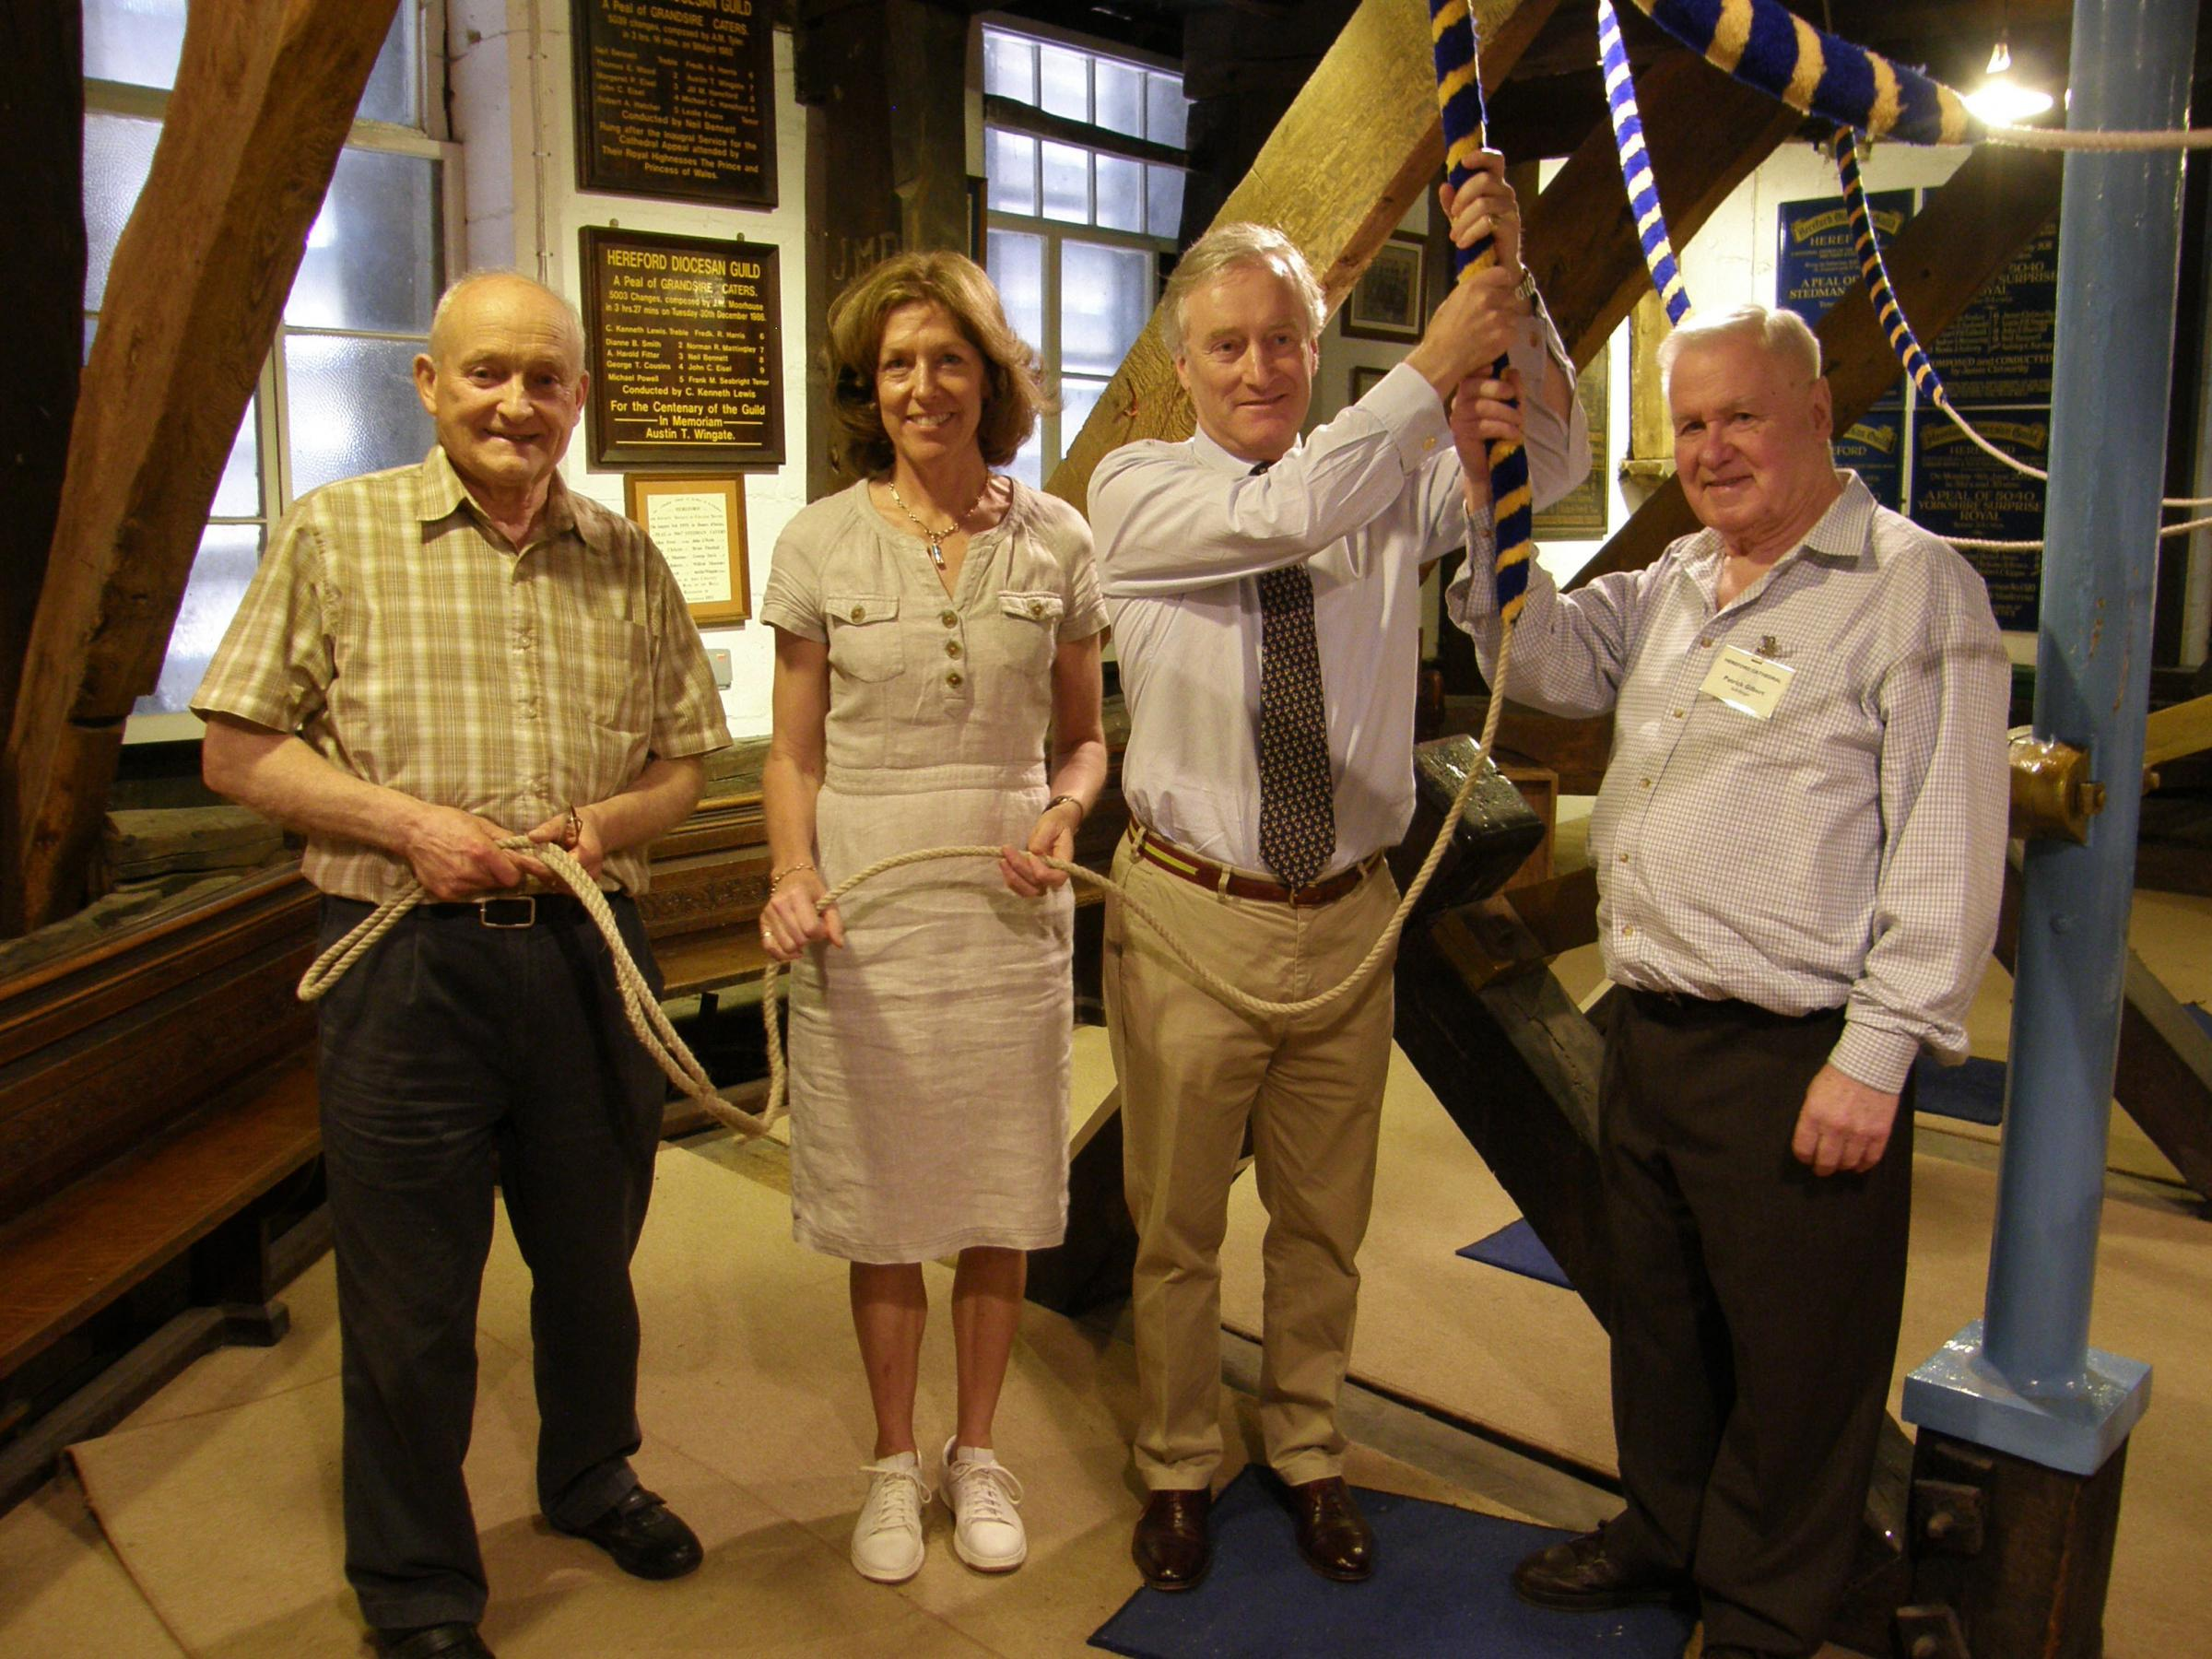 Lord and Lady Ashton try their hand at bellringing